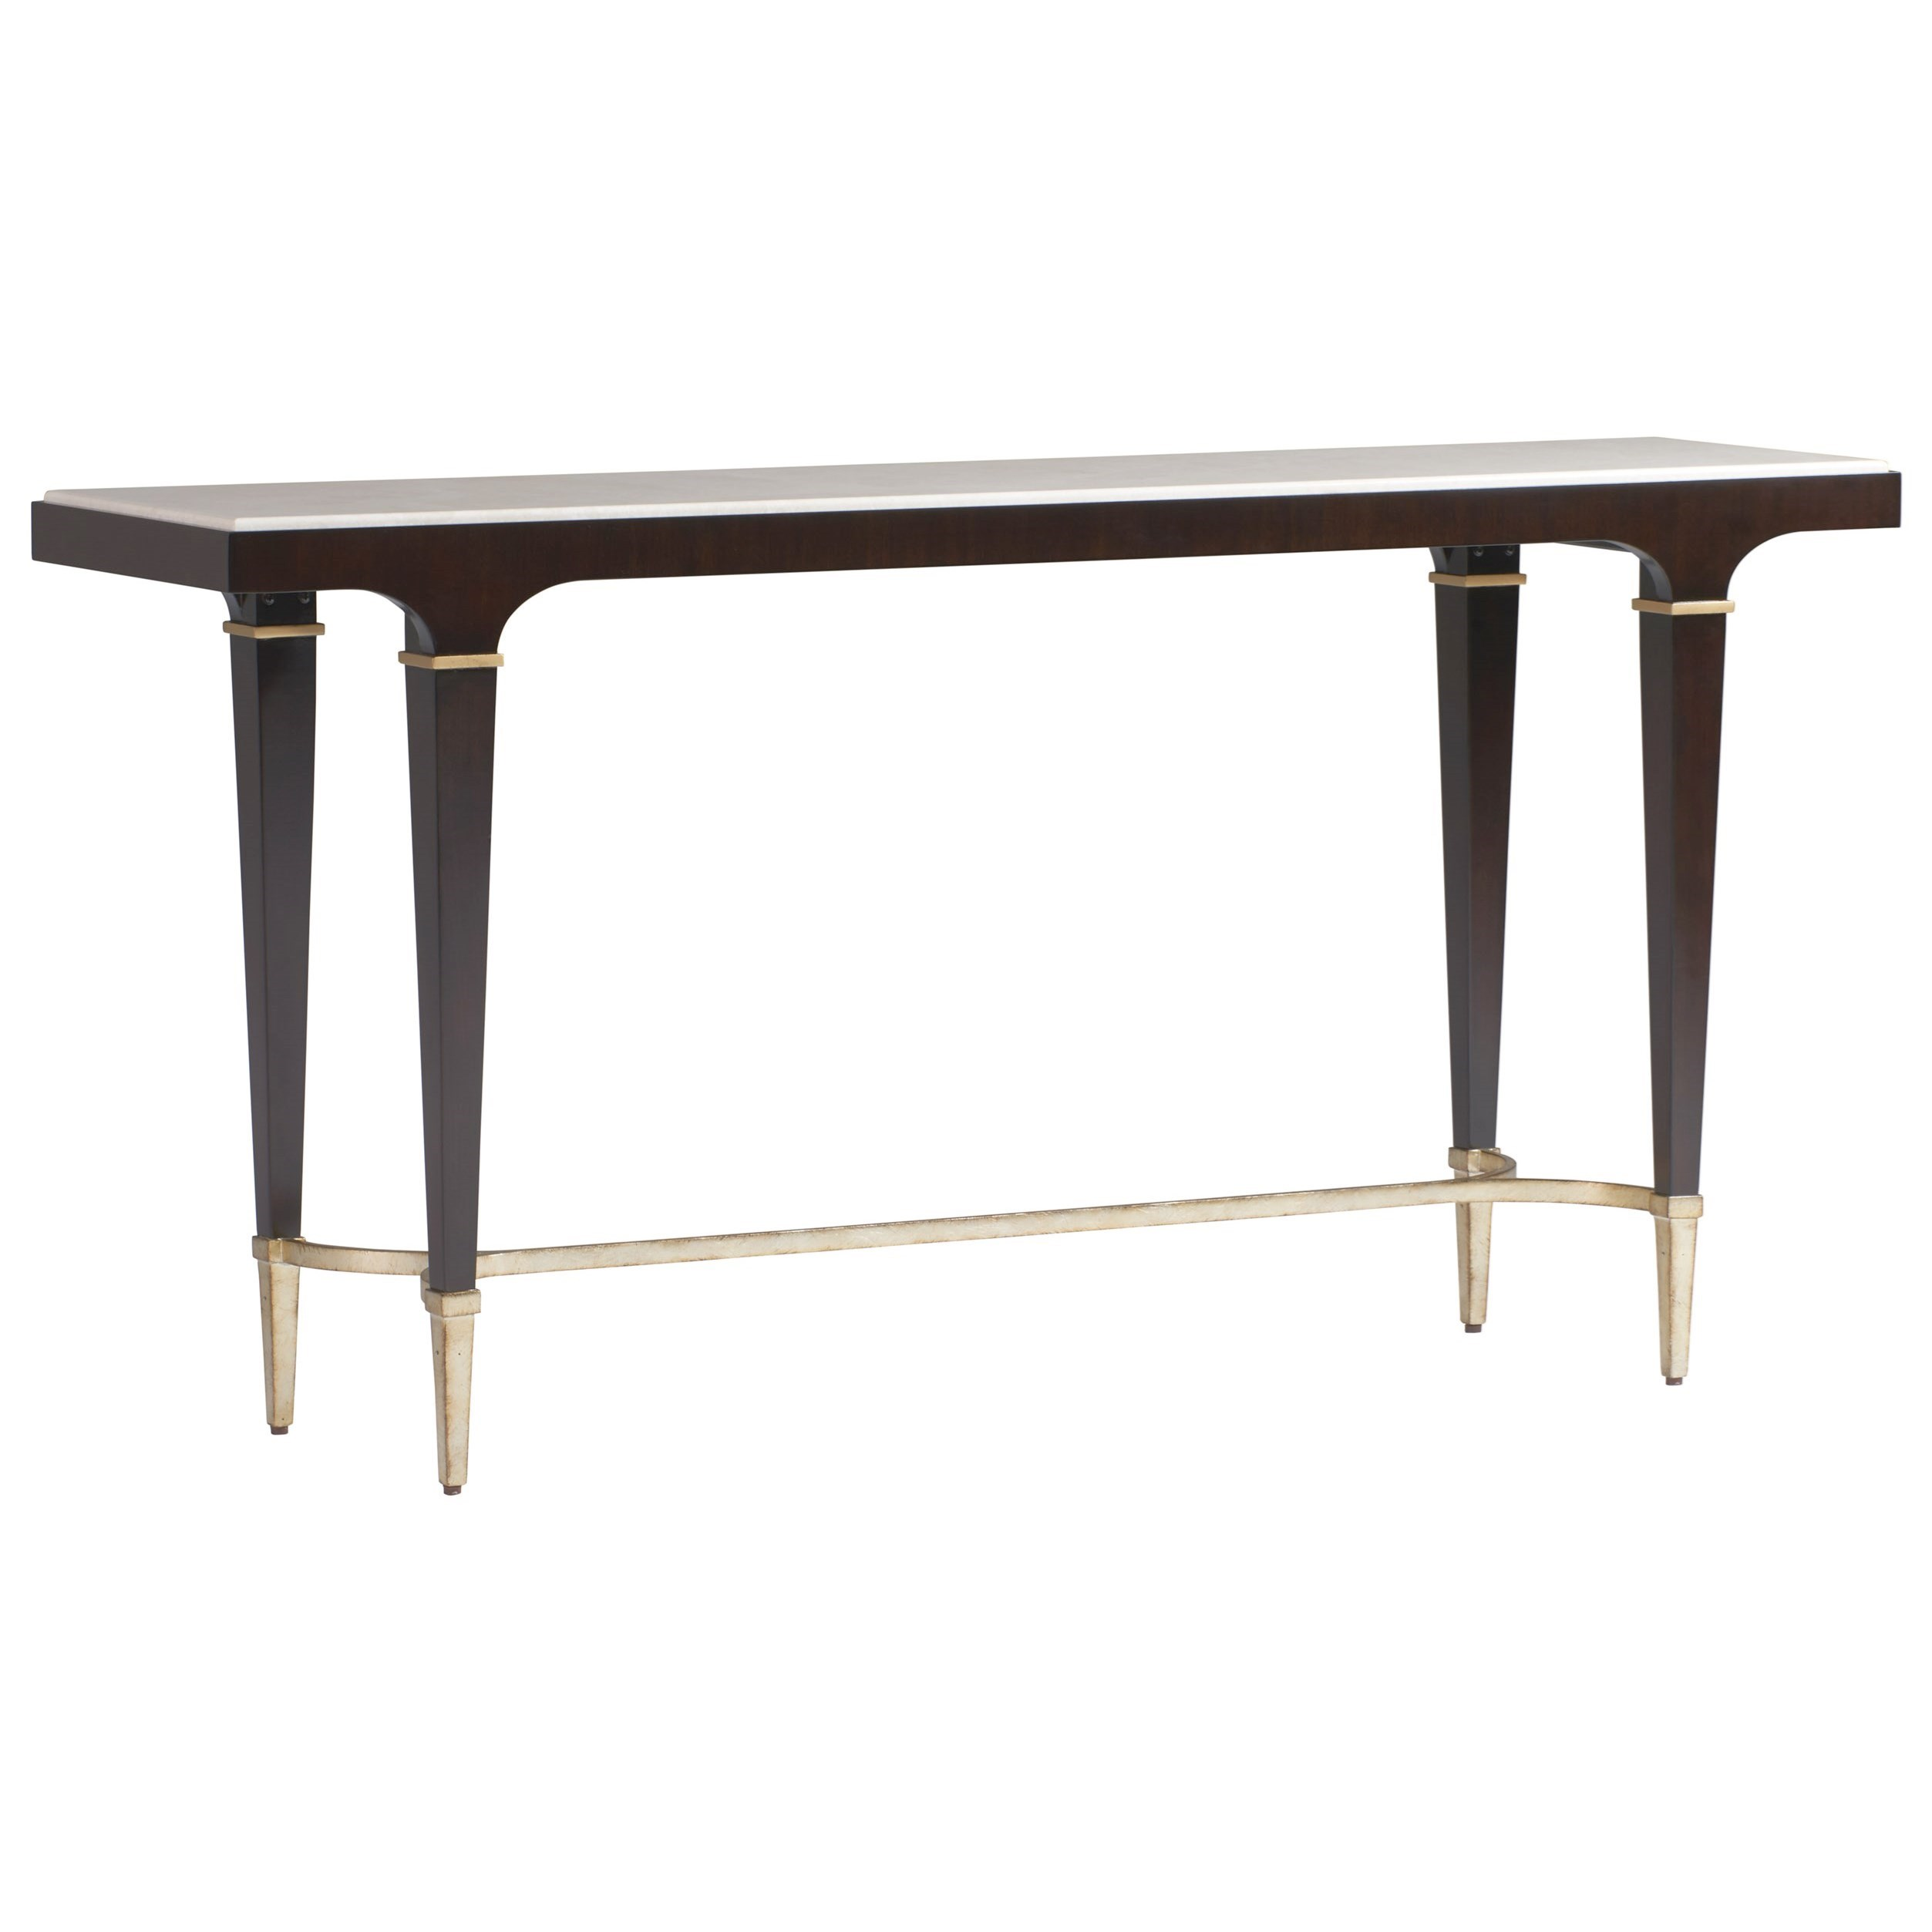 Carlyle Beekman Console by Lexington at Baer's Furniture